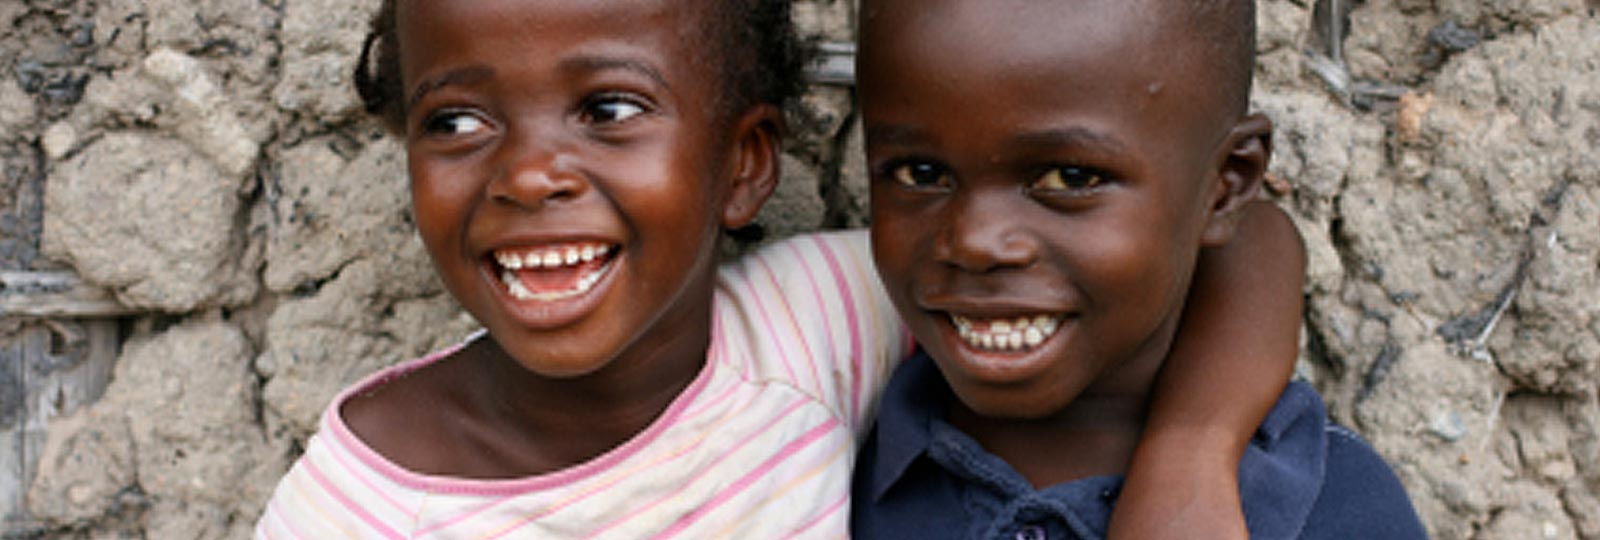 Donate to the children of Eastern Africa.Photo: istock